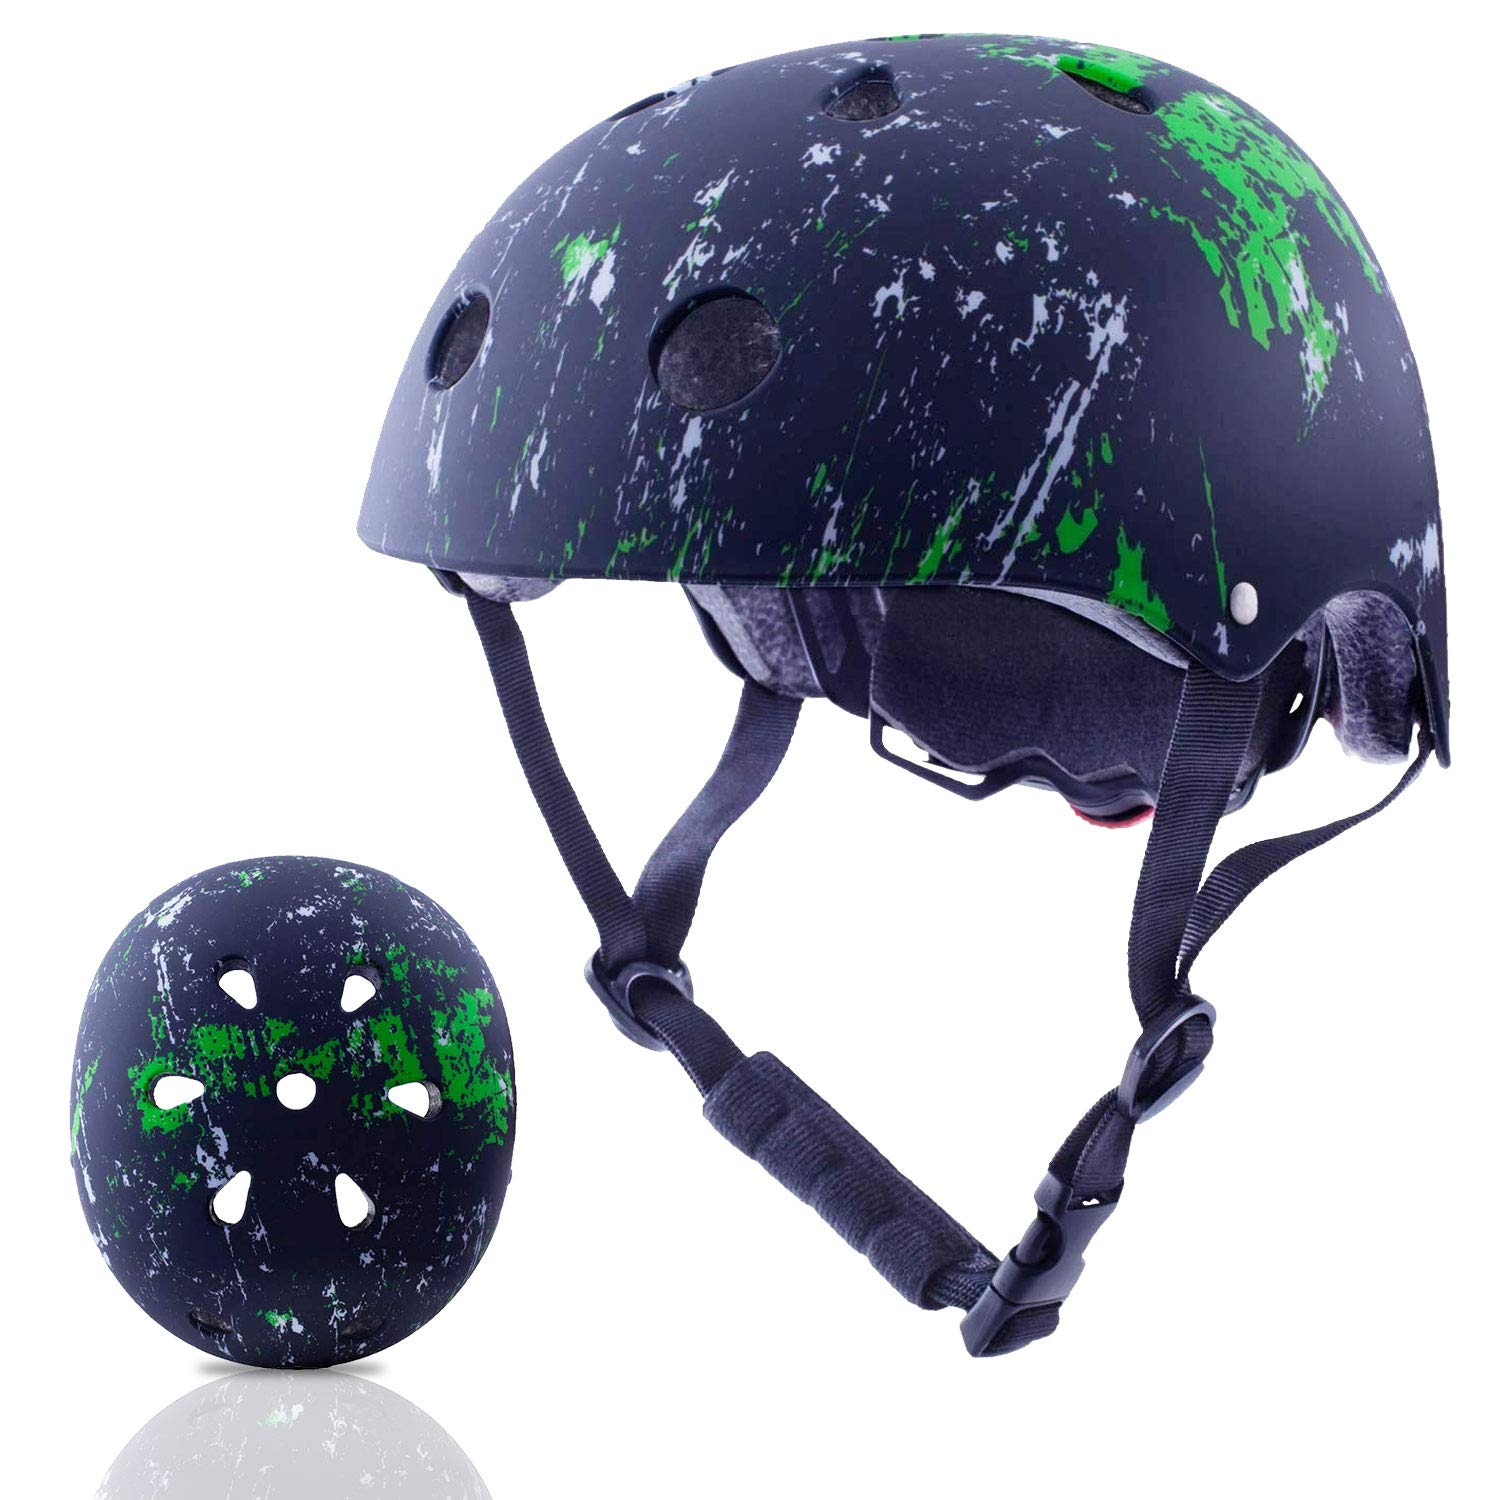 Exclusky Kids Helmets Adjustable CE CPSC Certified Sports Child Helmet for Bike Cycling/Scooter/BMX/Skating - Ages 5+ (Black)